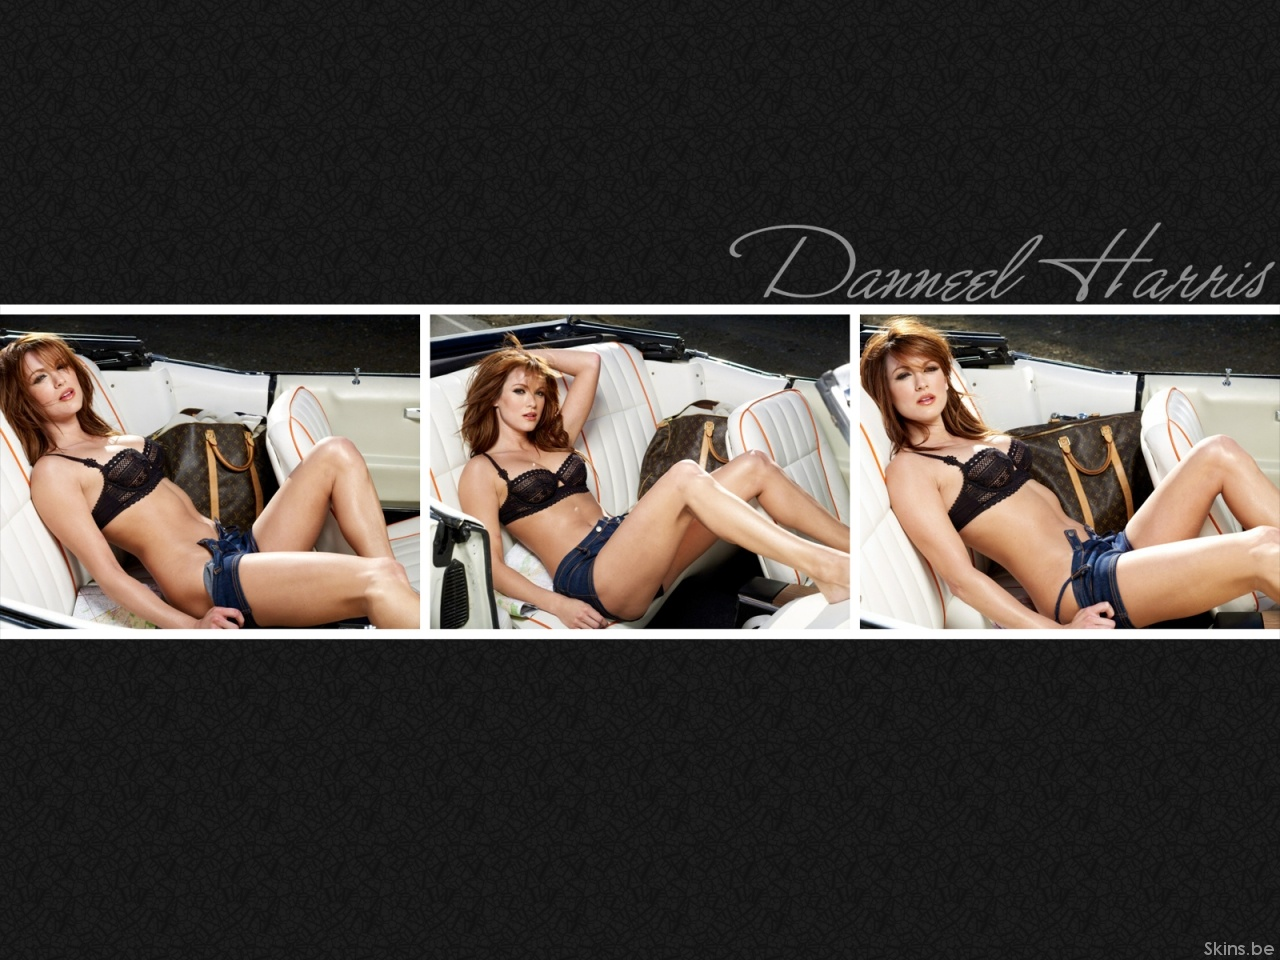 Danneel Harris wallpaper (#32532)